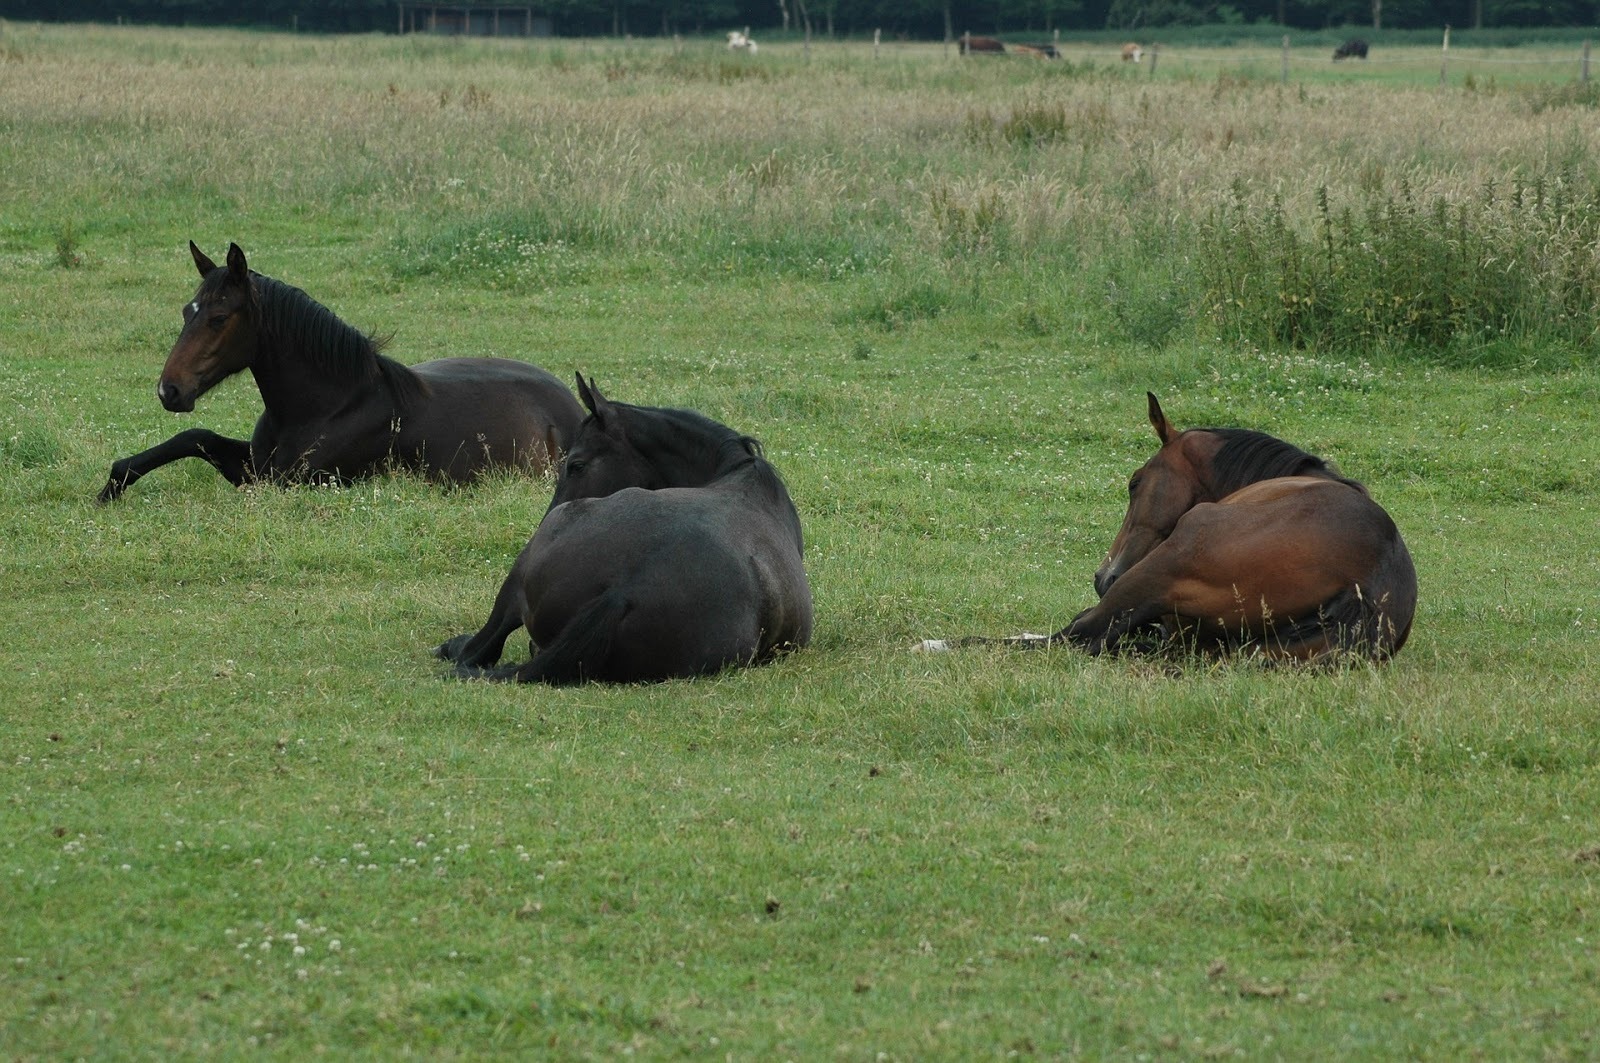 Three Bay horses lying down in a field